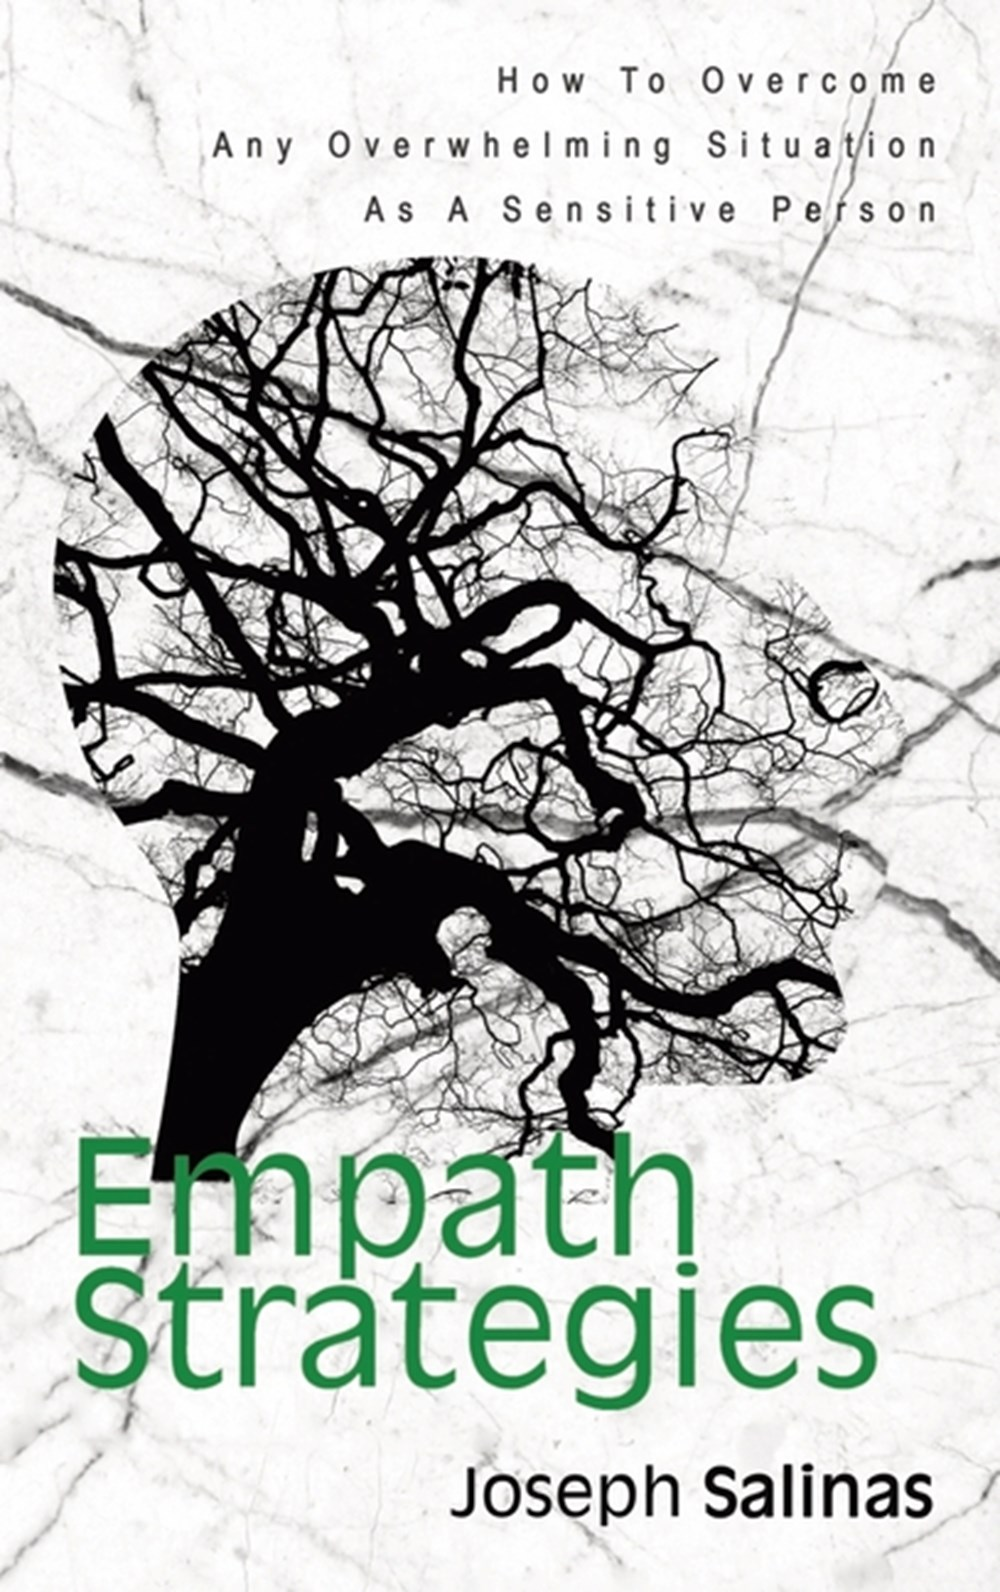 Empath Strategies How To Overcome Any Overwhelming Situation As A Sensitive Person